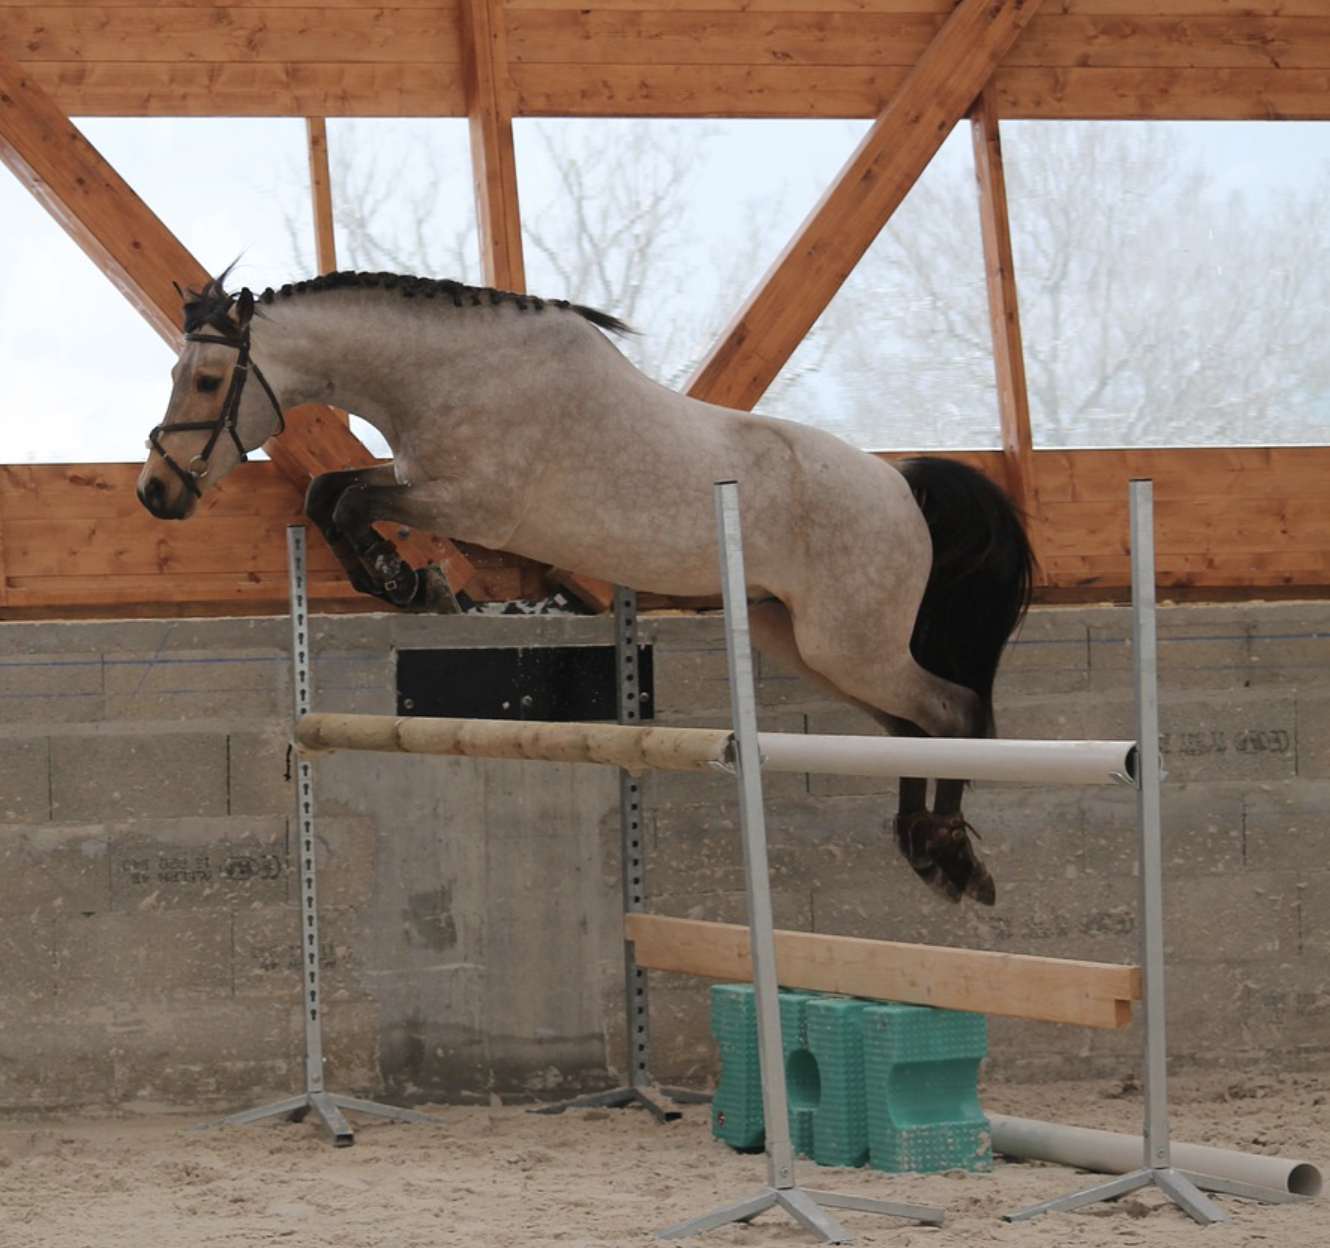 Free jumping horse bascules over an obstacle